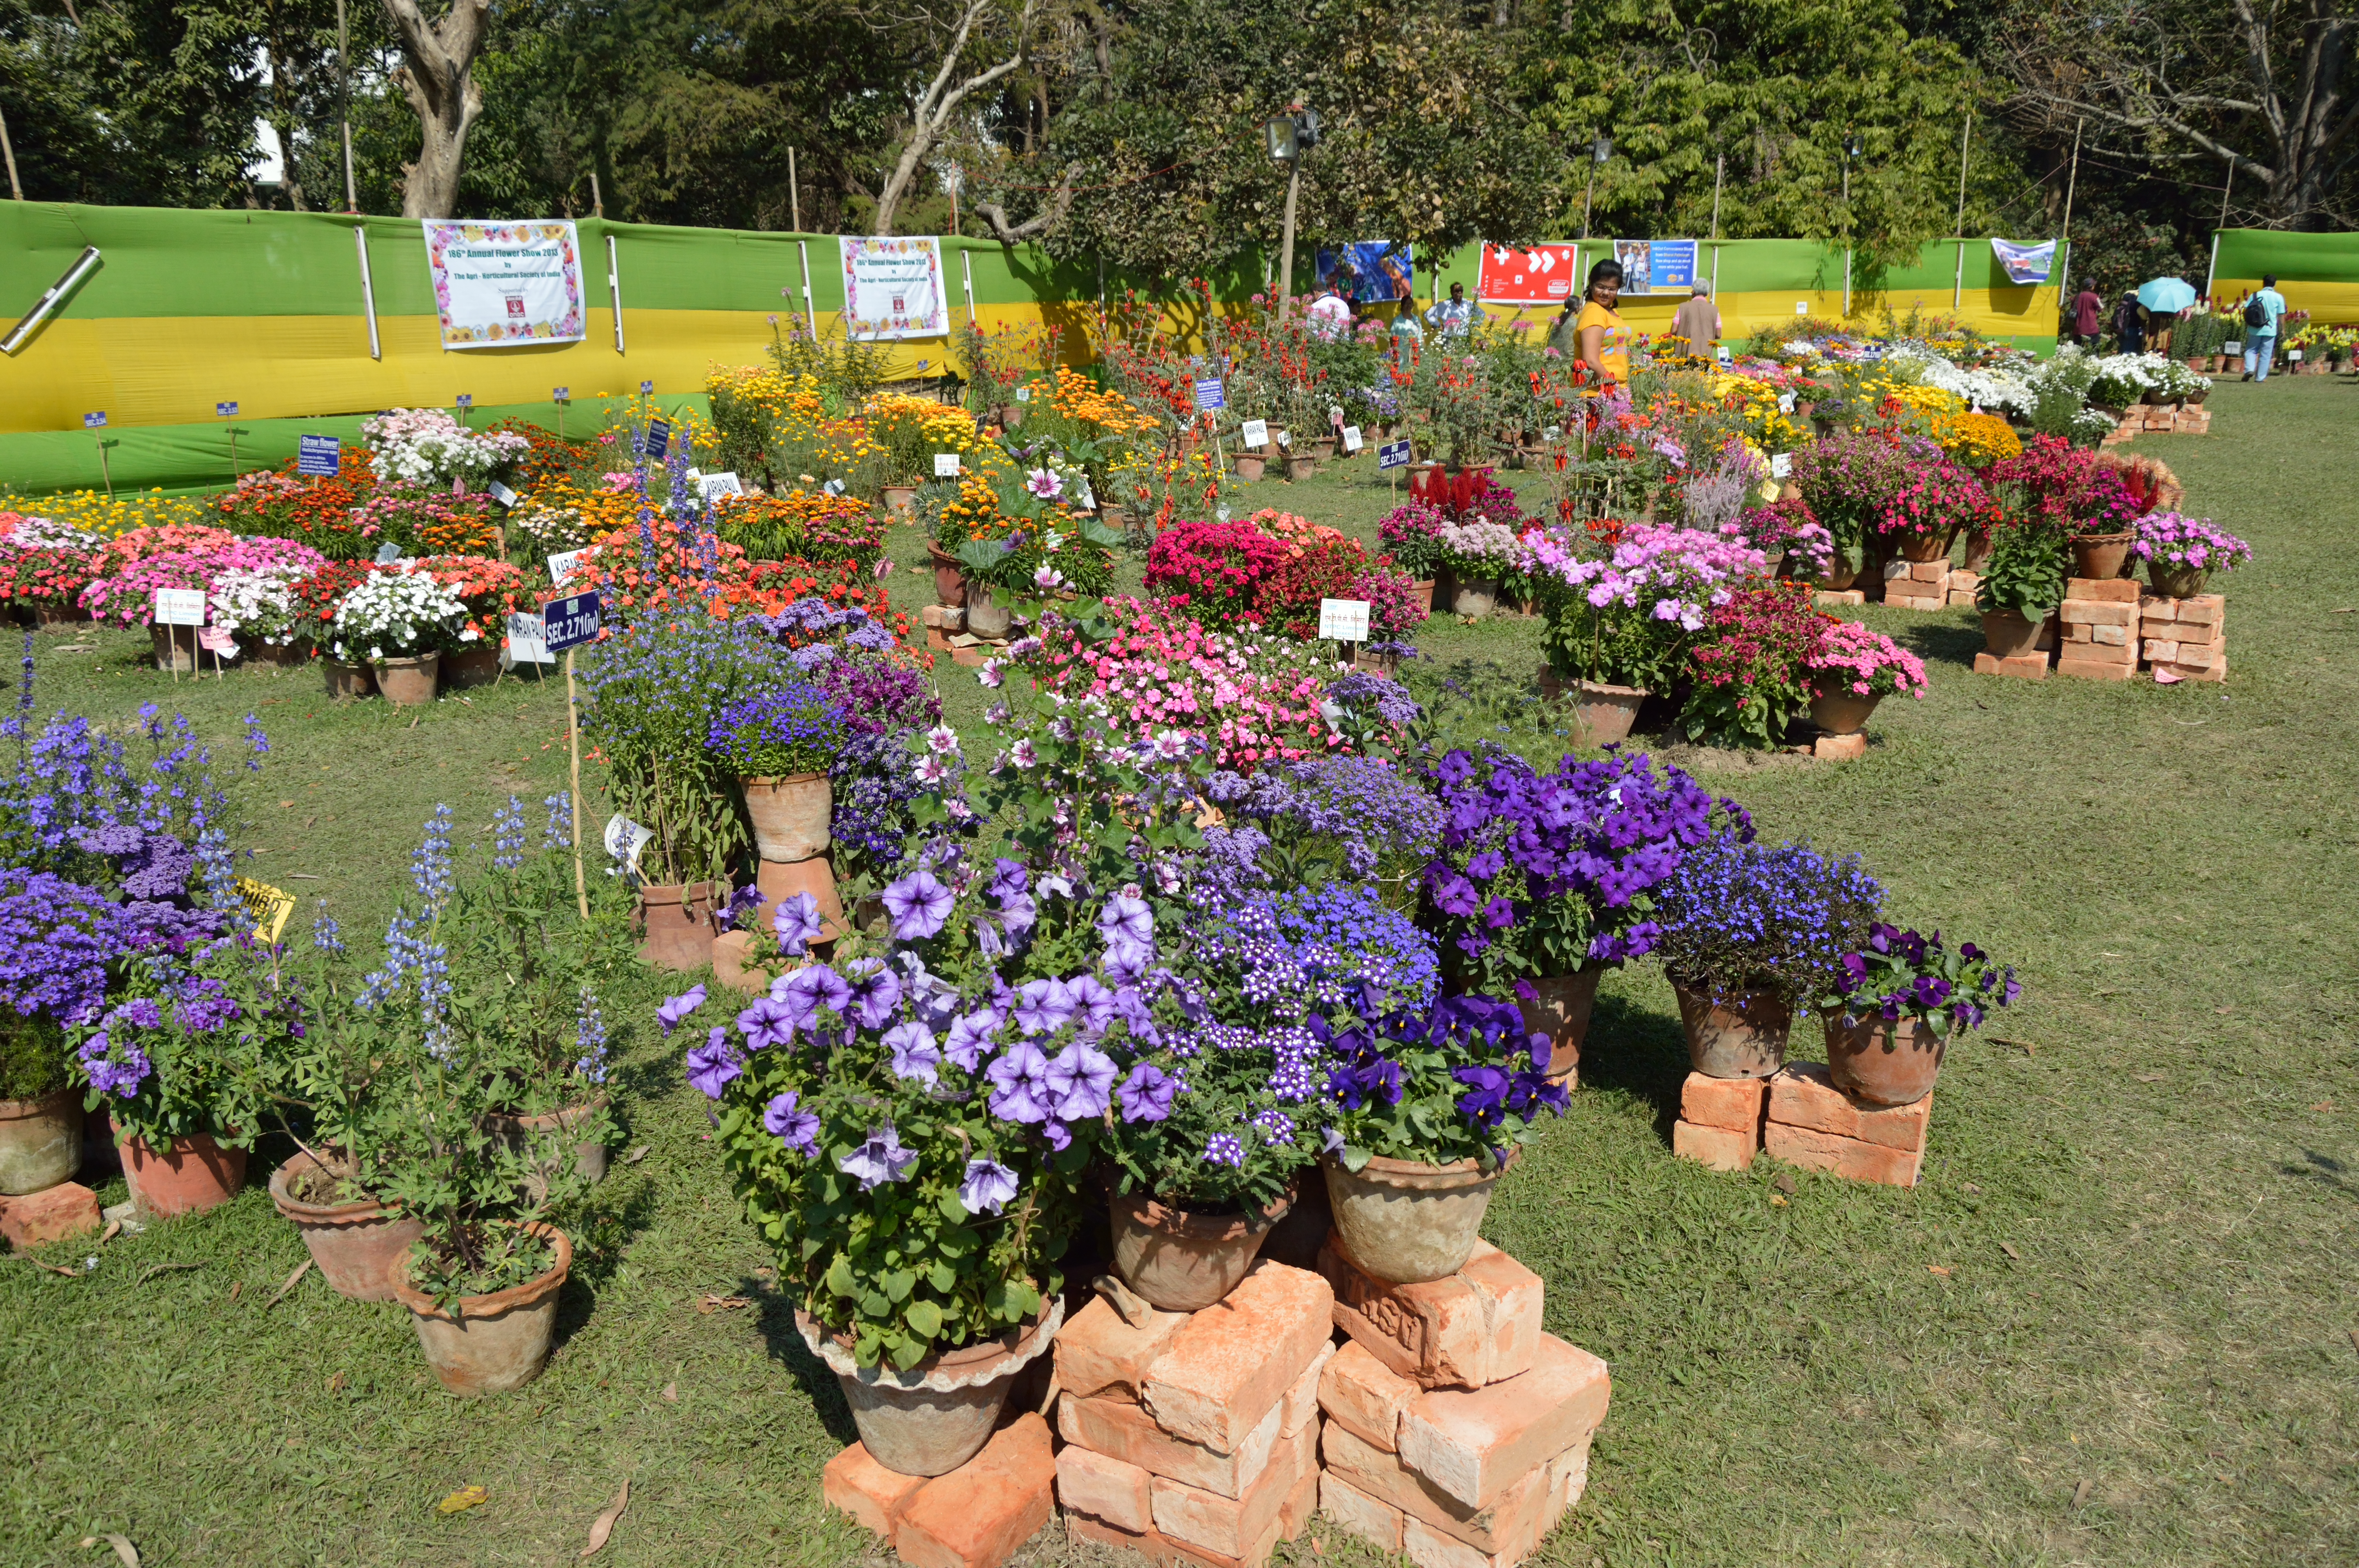 Fileannual flower show agri horticultural society of india fileannual flower show agri horticultural society of india alipore kolkata izmirmasajfo